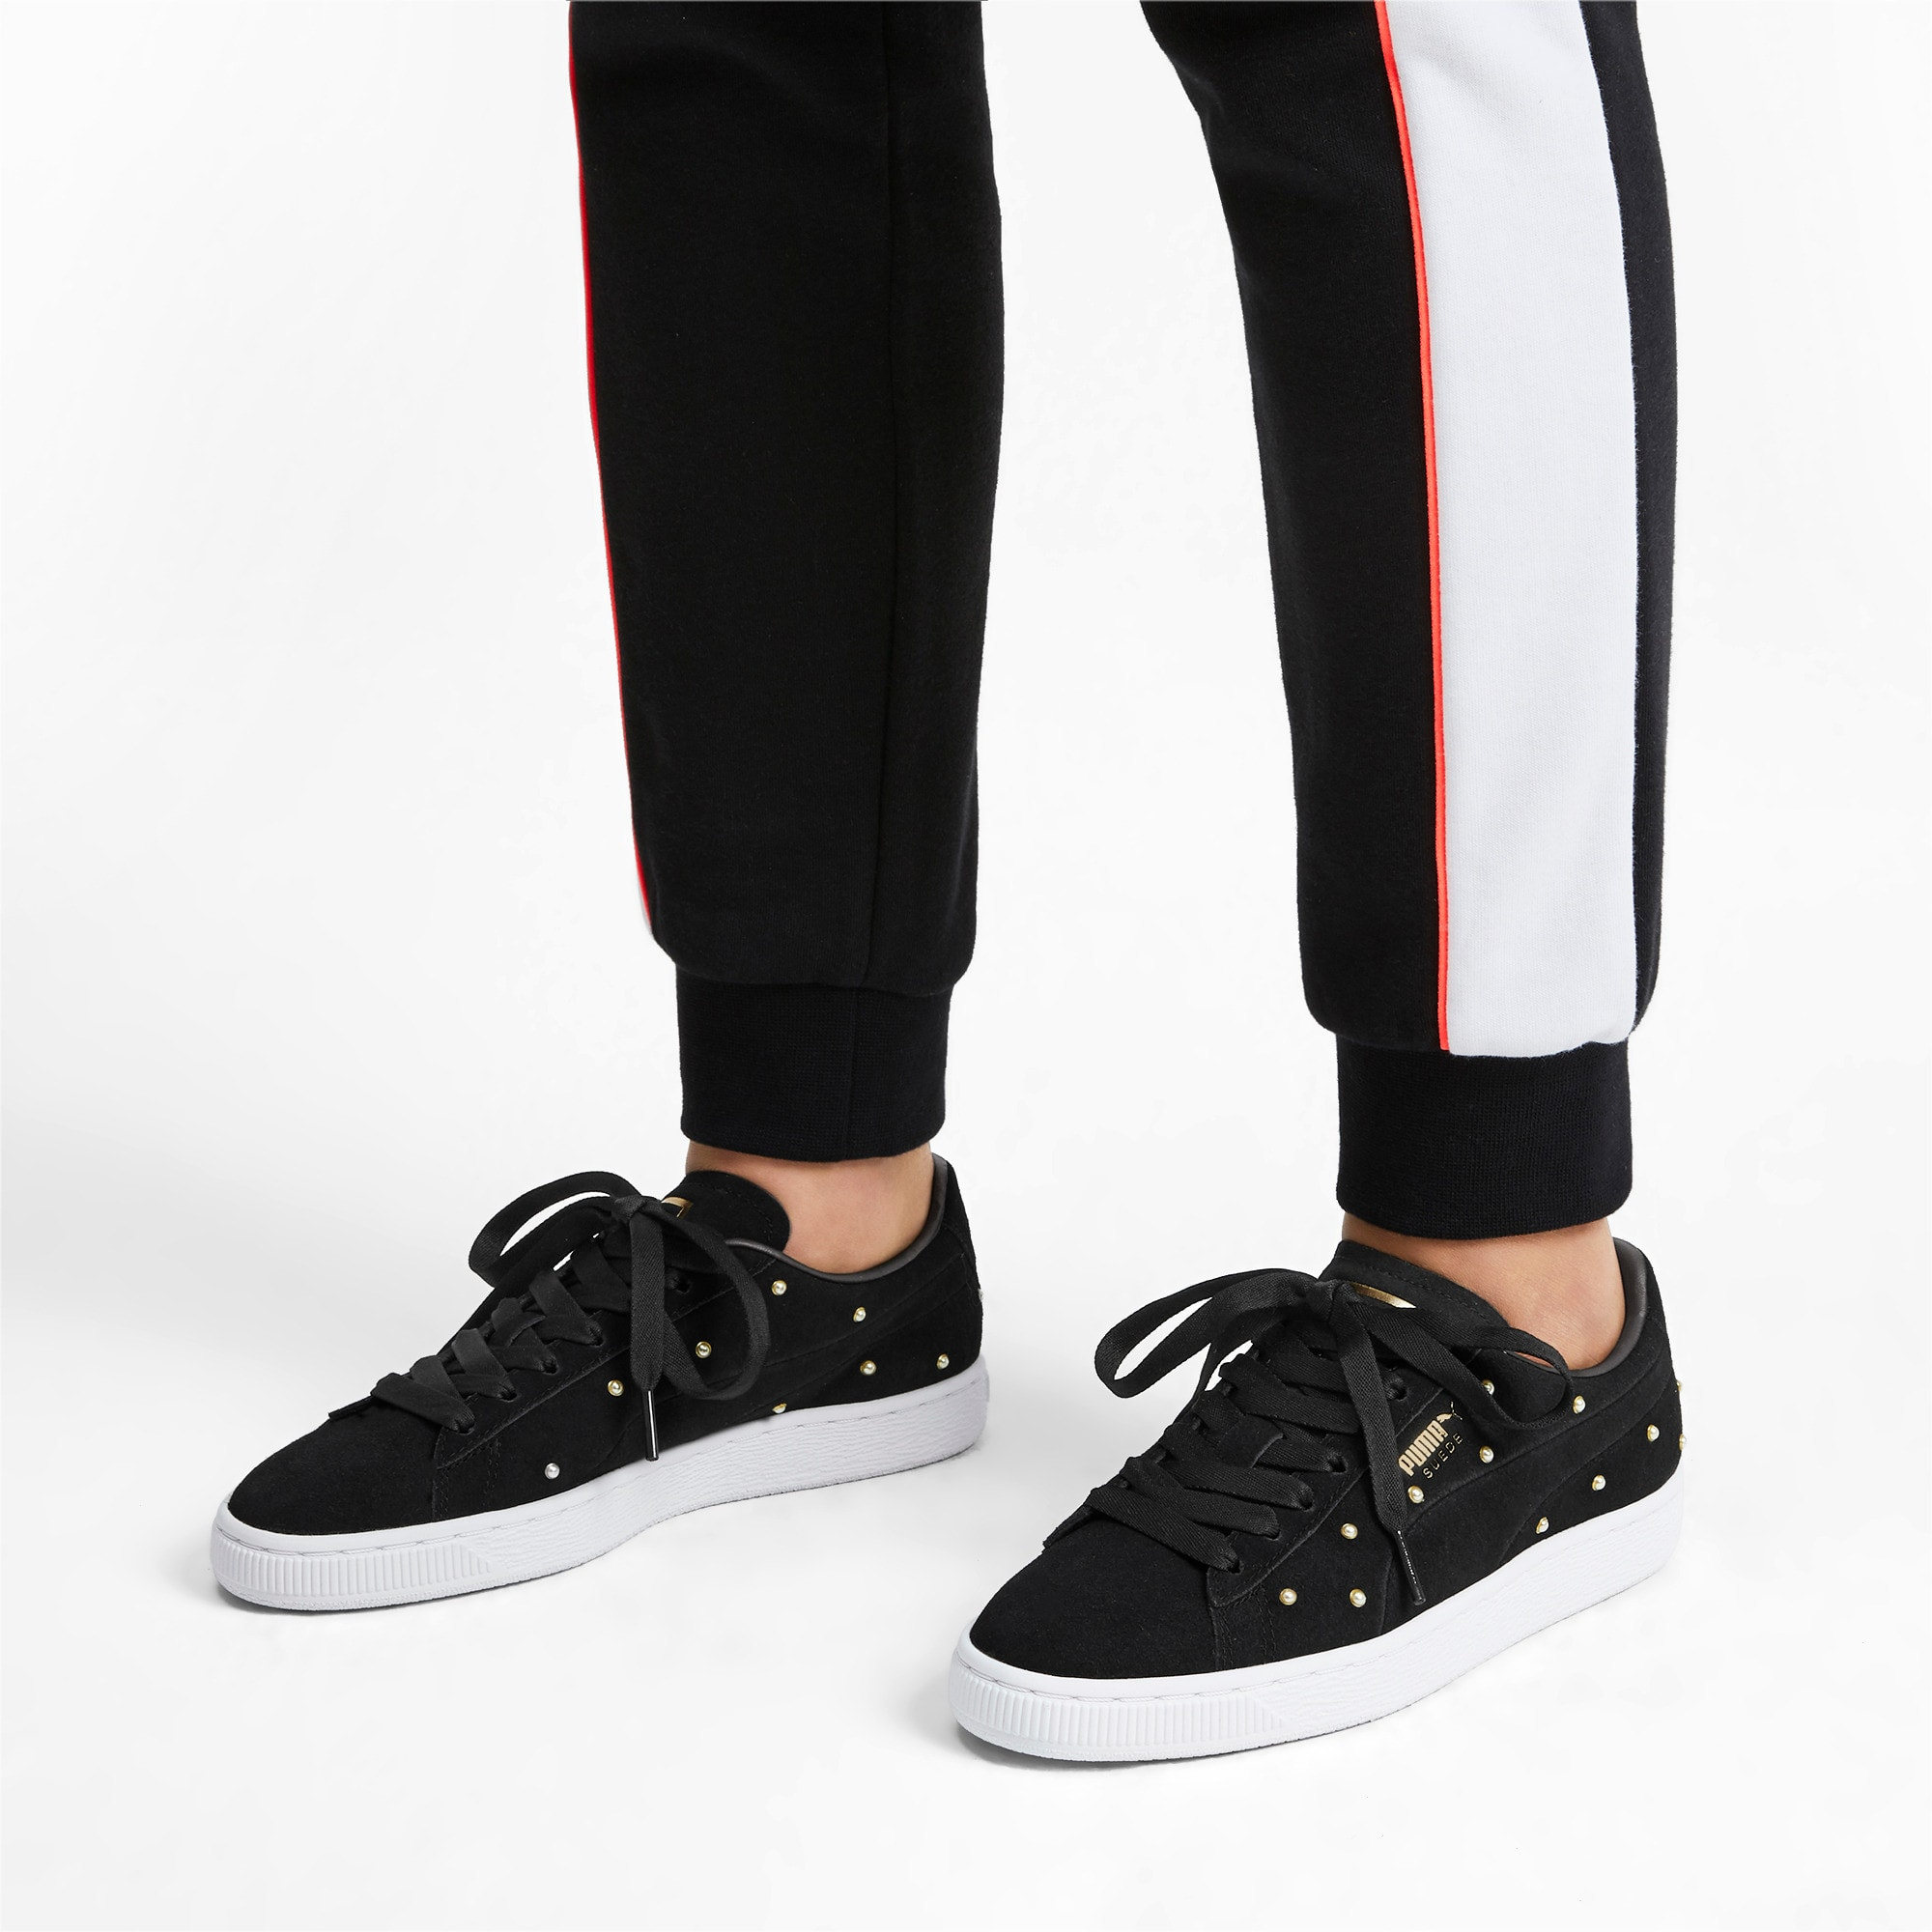 Thumbnail 2 of Suede Pearl Studs Women's Sneakers, Puma Black-Puma Team Gold, medium